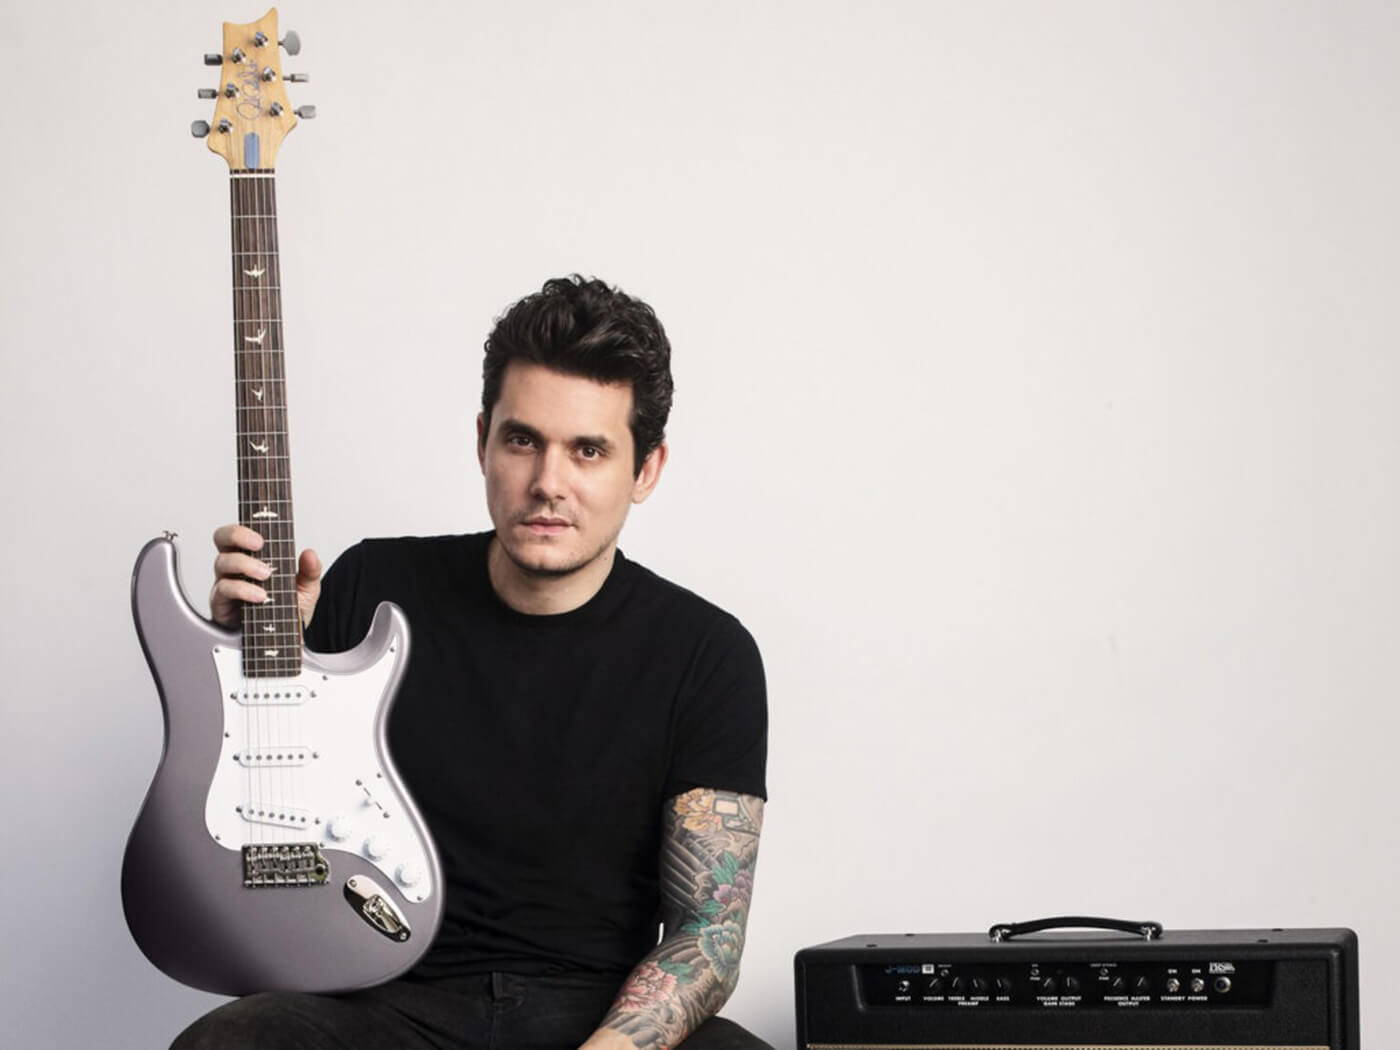 john mayer strat wiring diagram john mayer s prs silver sky is it just another strat guitar  john mayer s prs silver sky is it